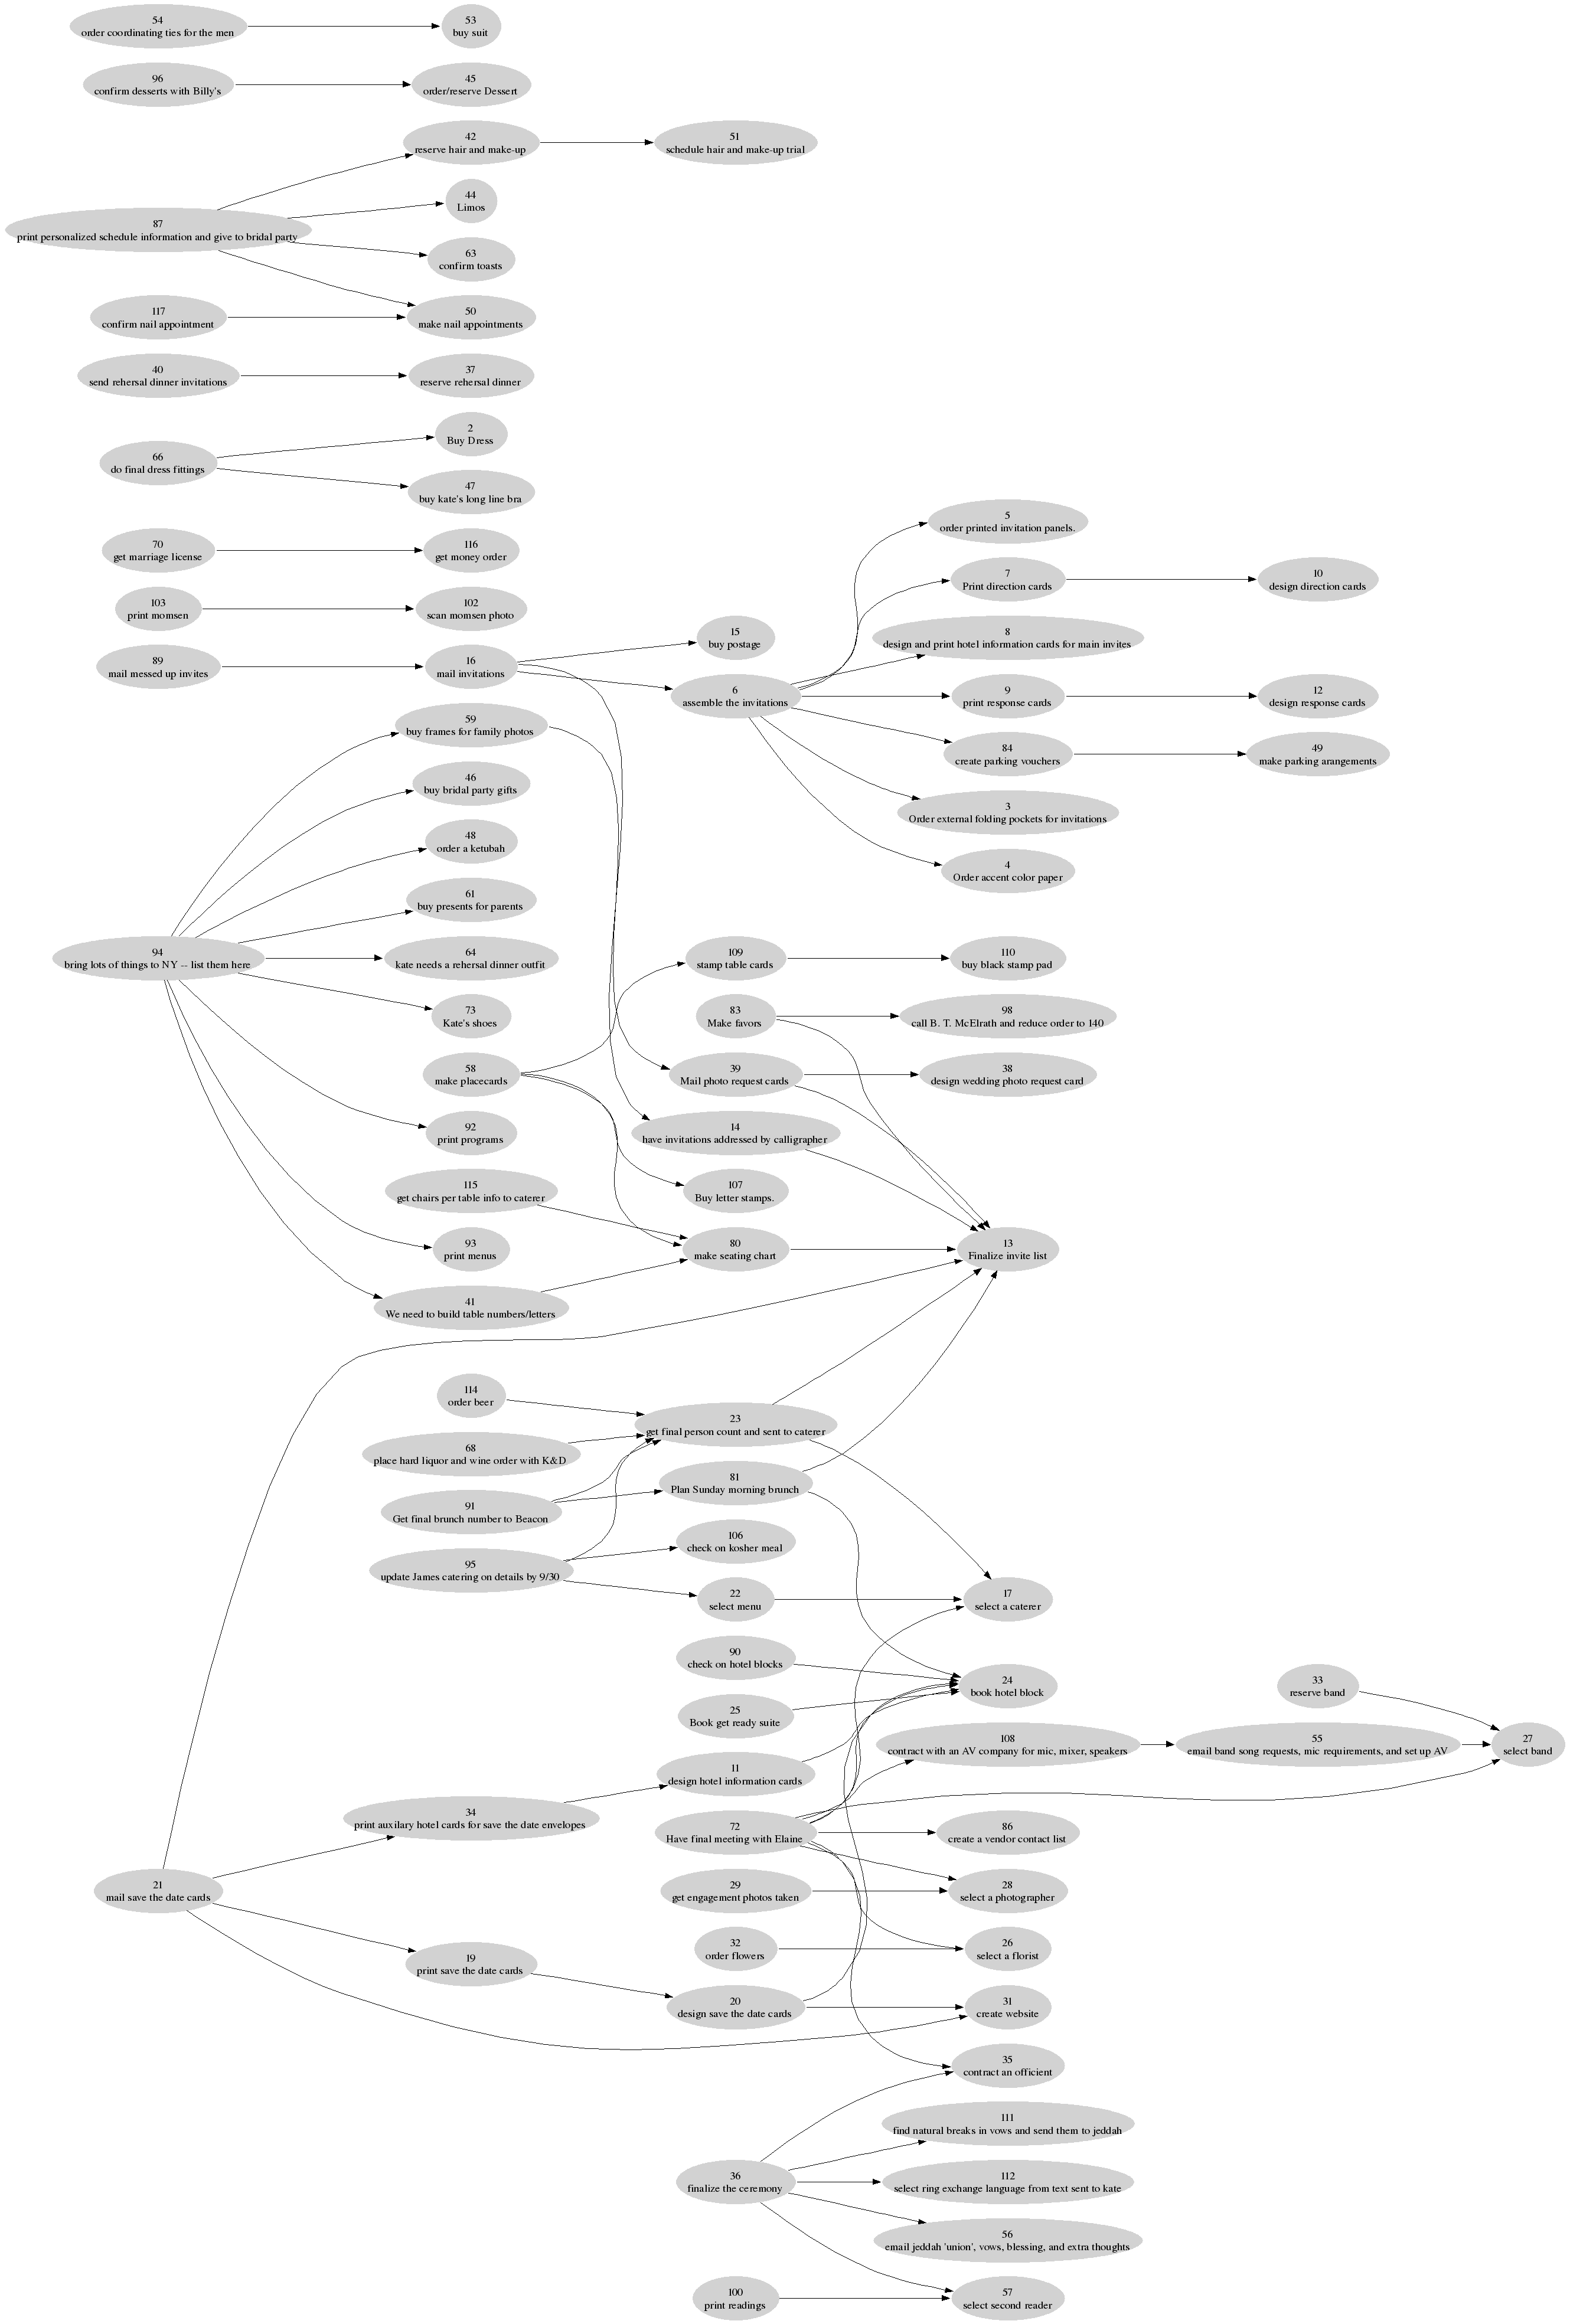 /unblog/static/attachments/2006-10-27-wedding-dependencies.png